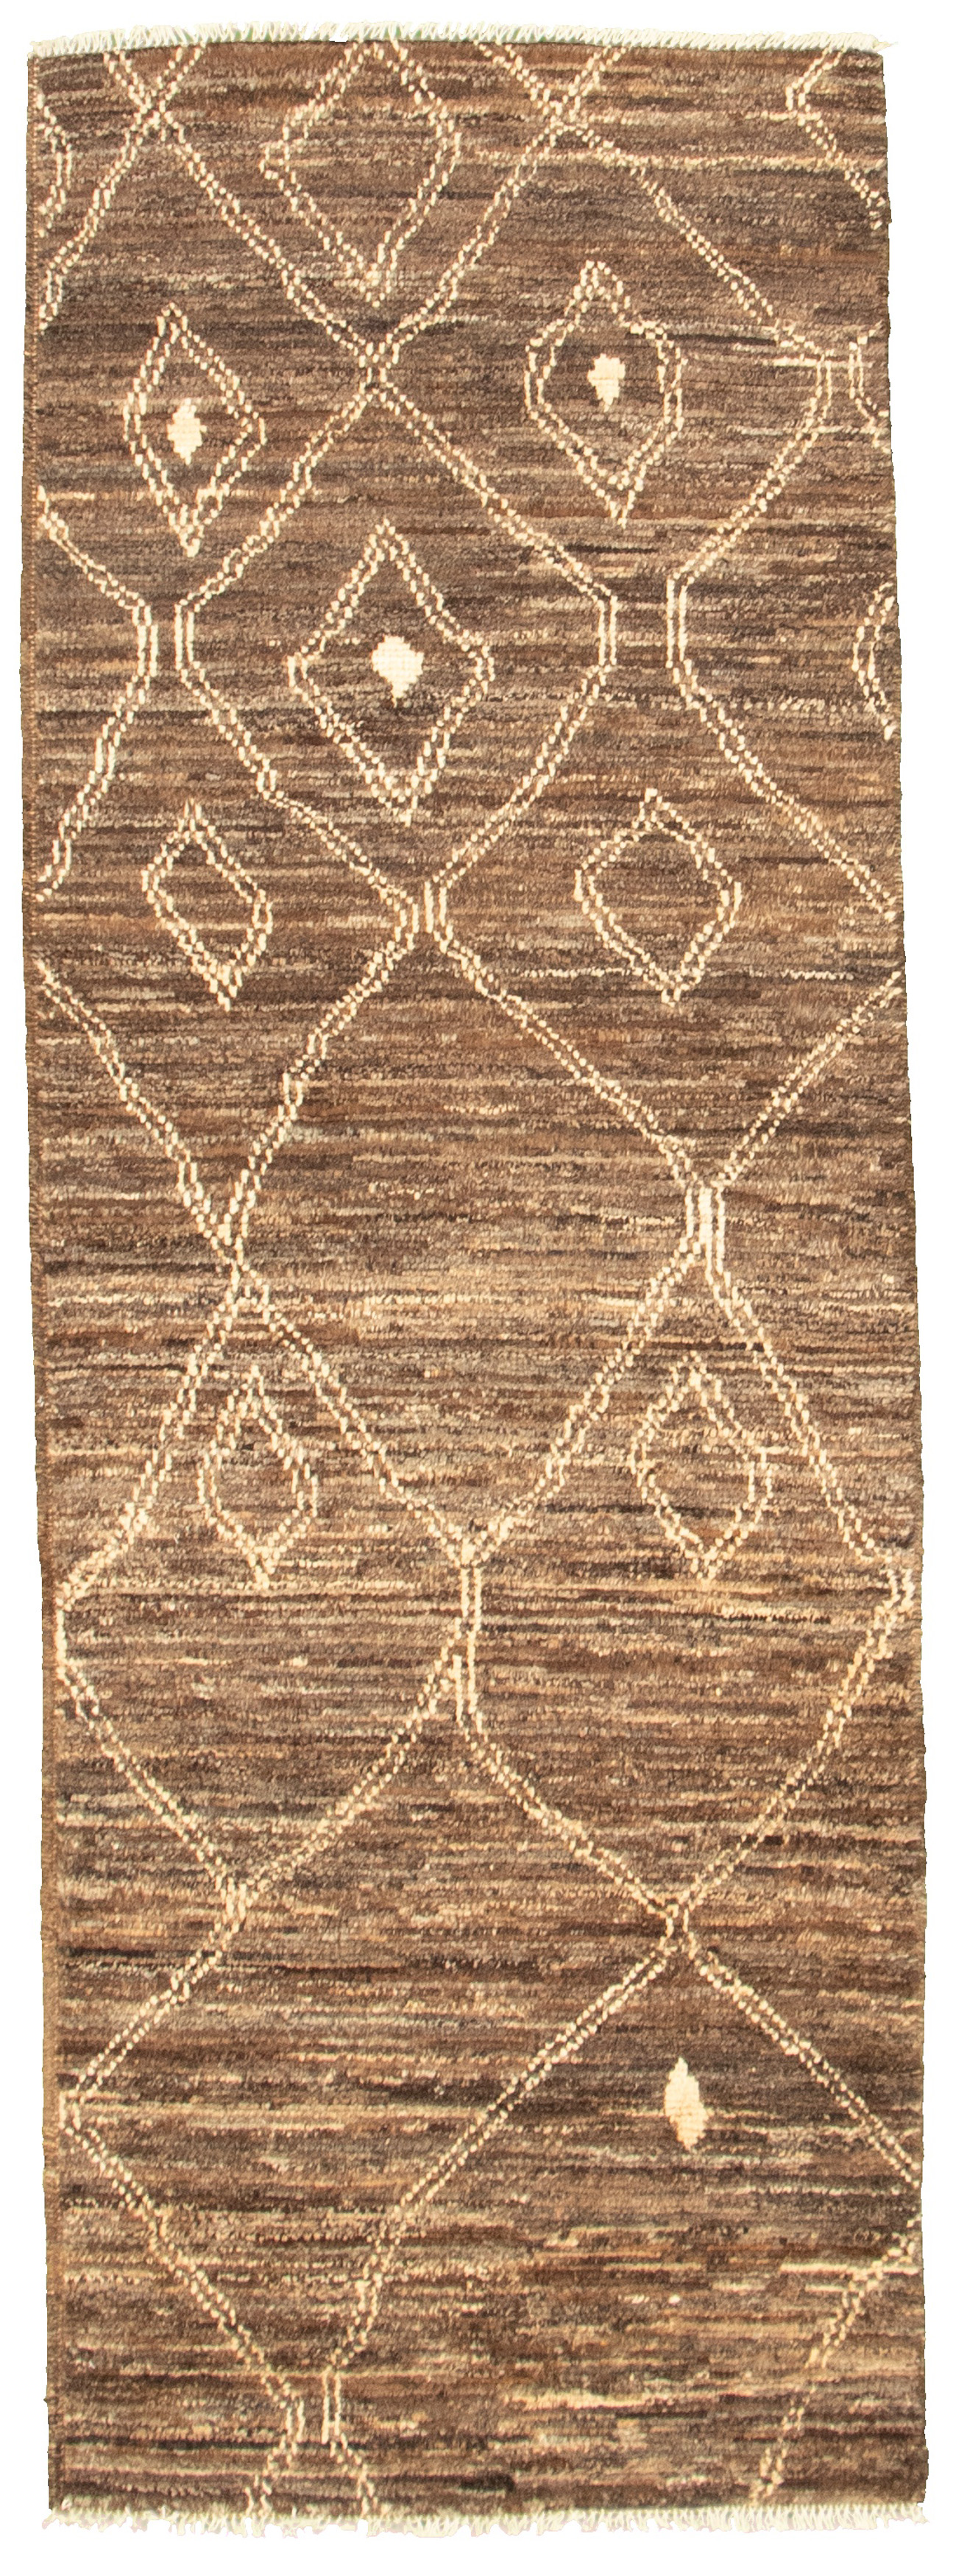 "Hand-knotted Marrakech Dark Brown Wool Rug 2'7"" x 7'8"" Size: 2'7"" x 7'8"""